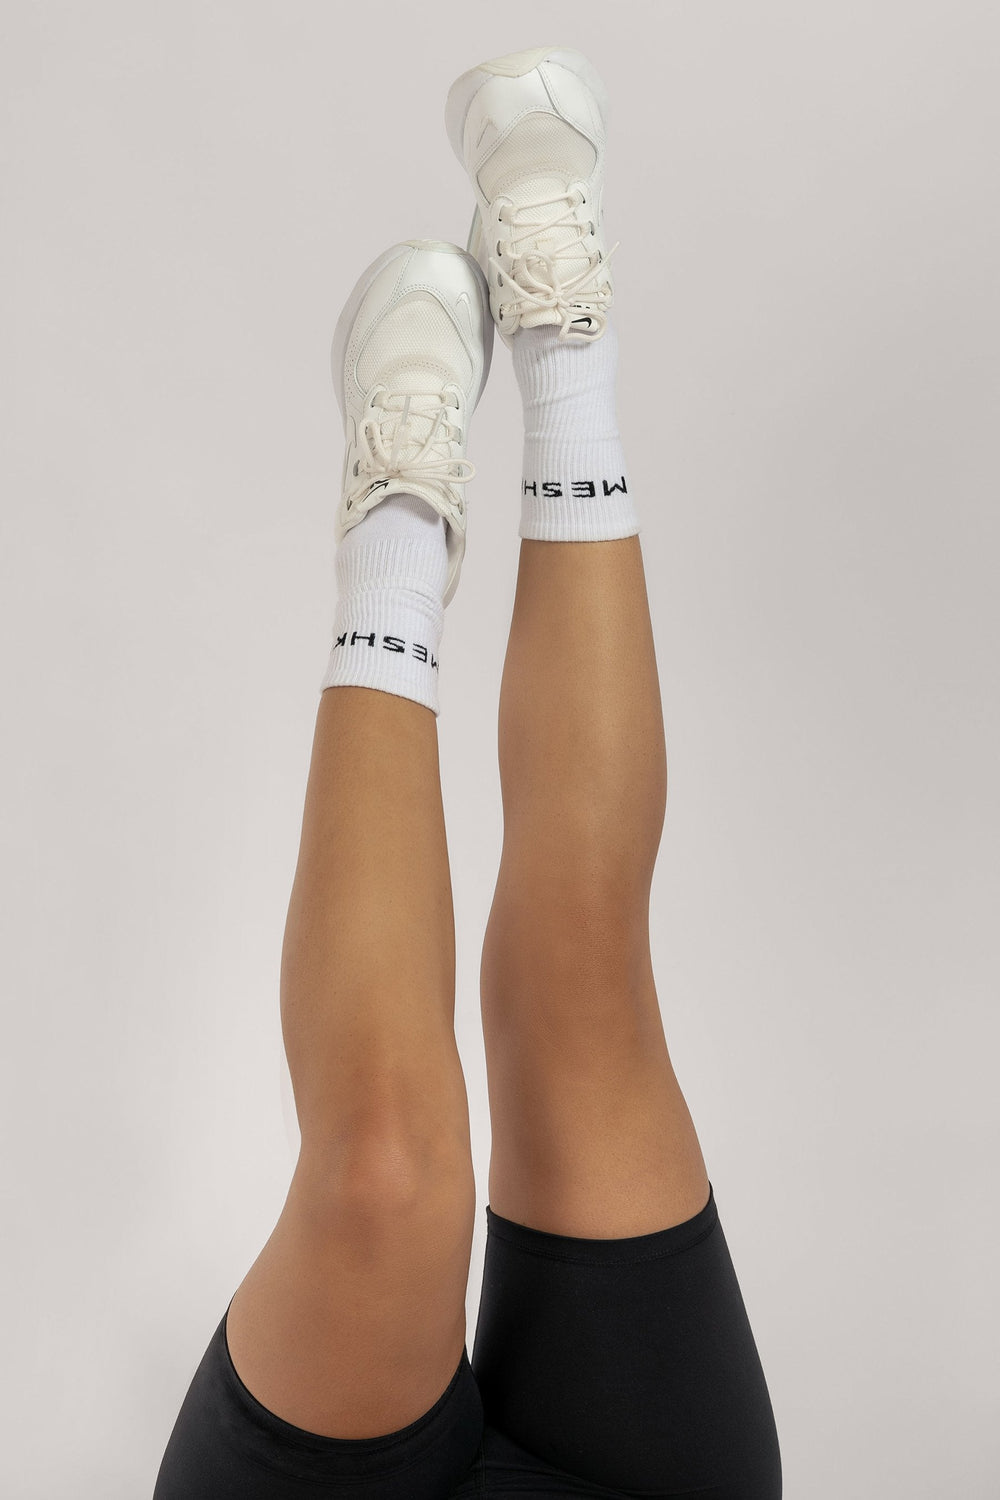 Meshki Branded Socks - White - MESHKI ?id=16083483066443